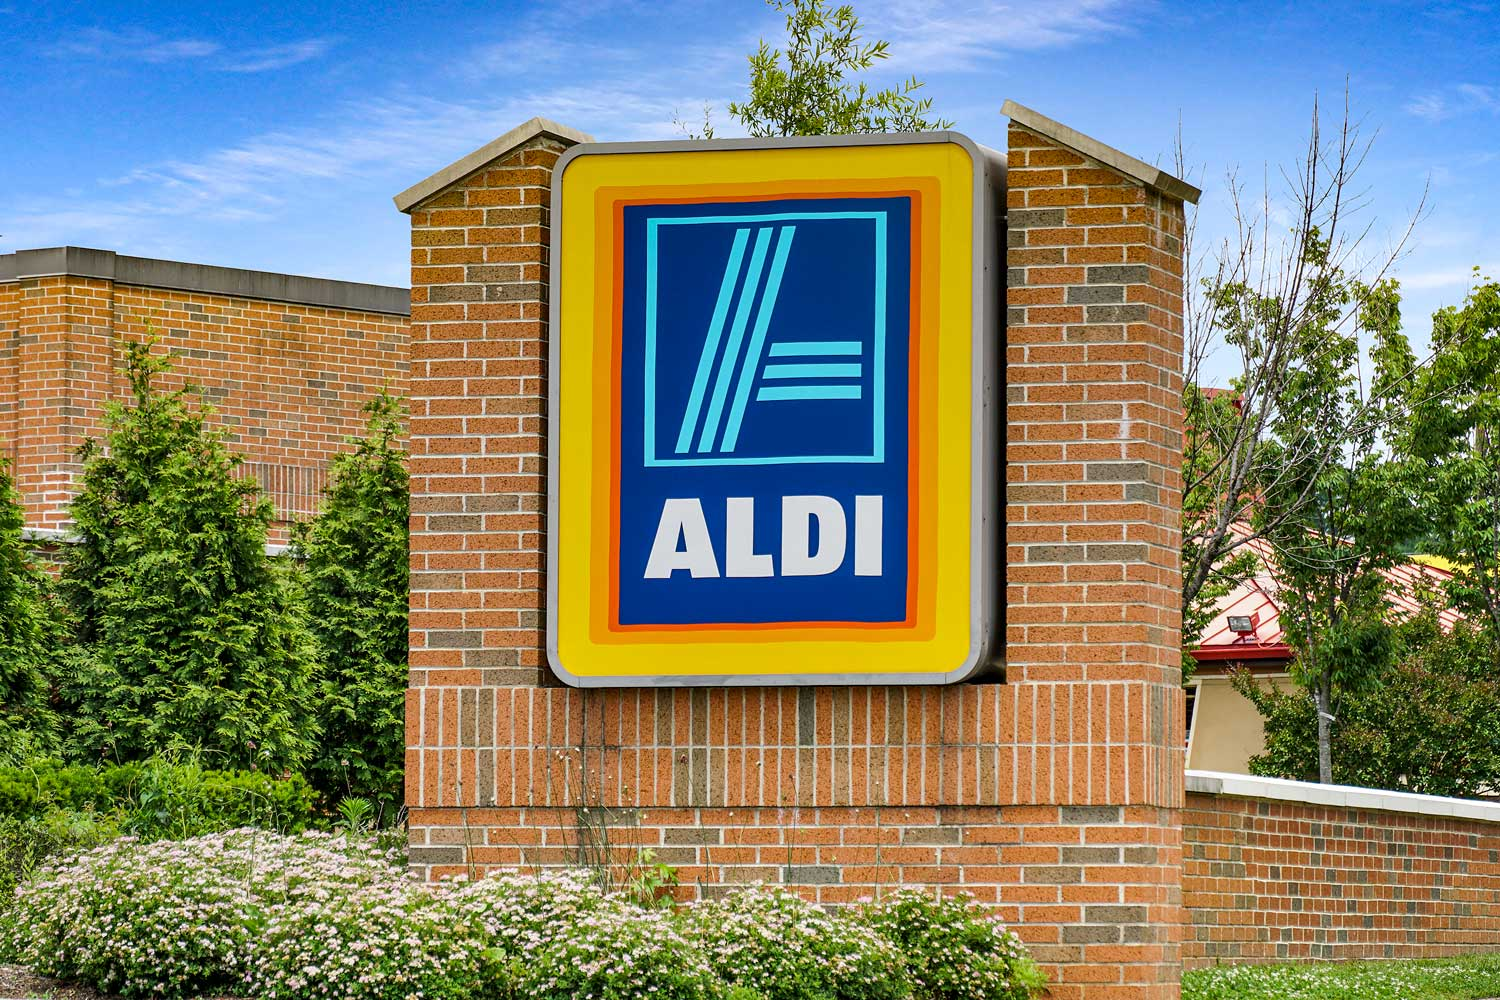 Aldi within walking distance from Kirkwood Apartments in Hyattsville, MD